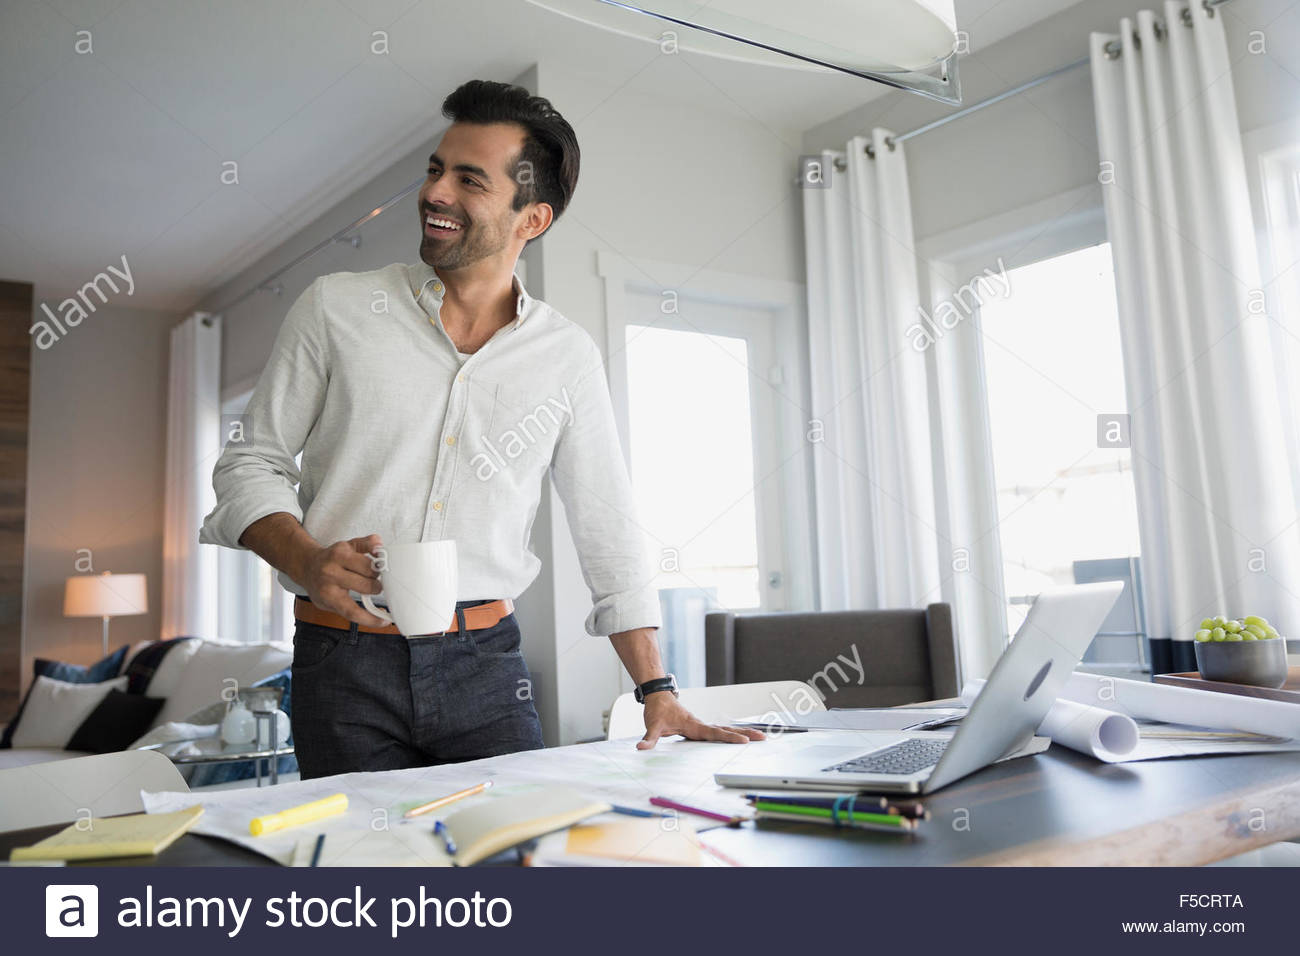 Table blueprint stock photos table blueprint stock images alamy smiling architect with blueprints drinking coffee dining table stock image malvernweather Choice Image